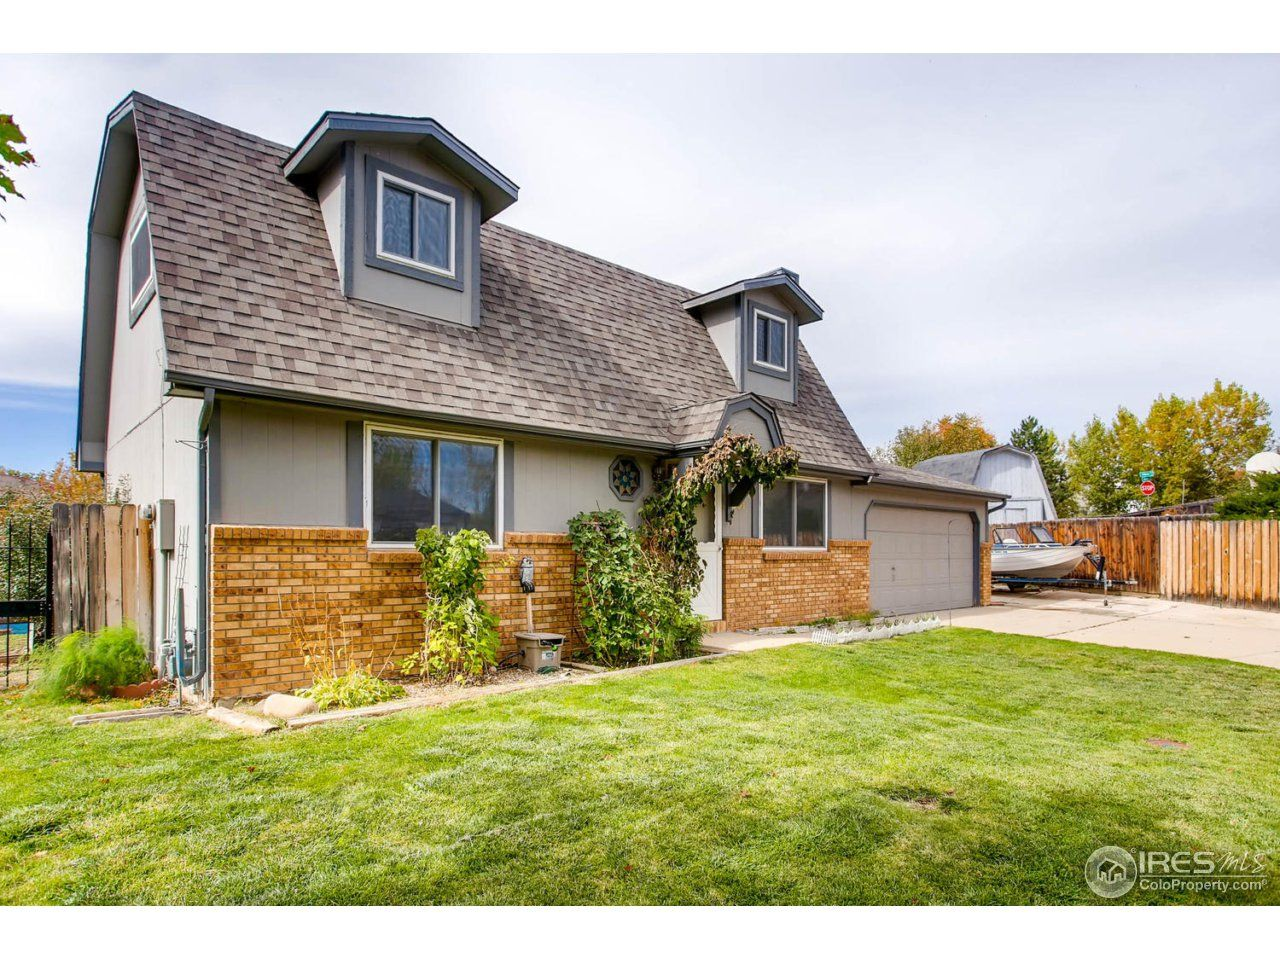 201 tralee ct, fort collins, co 80525 - estimate and home details